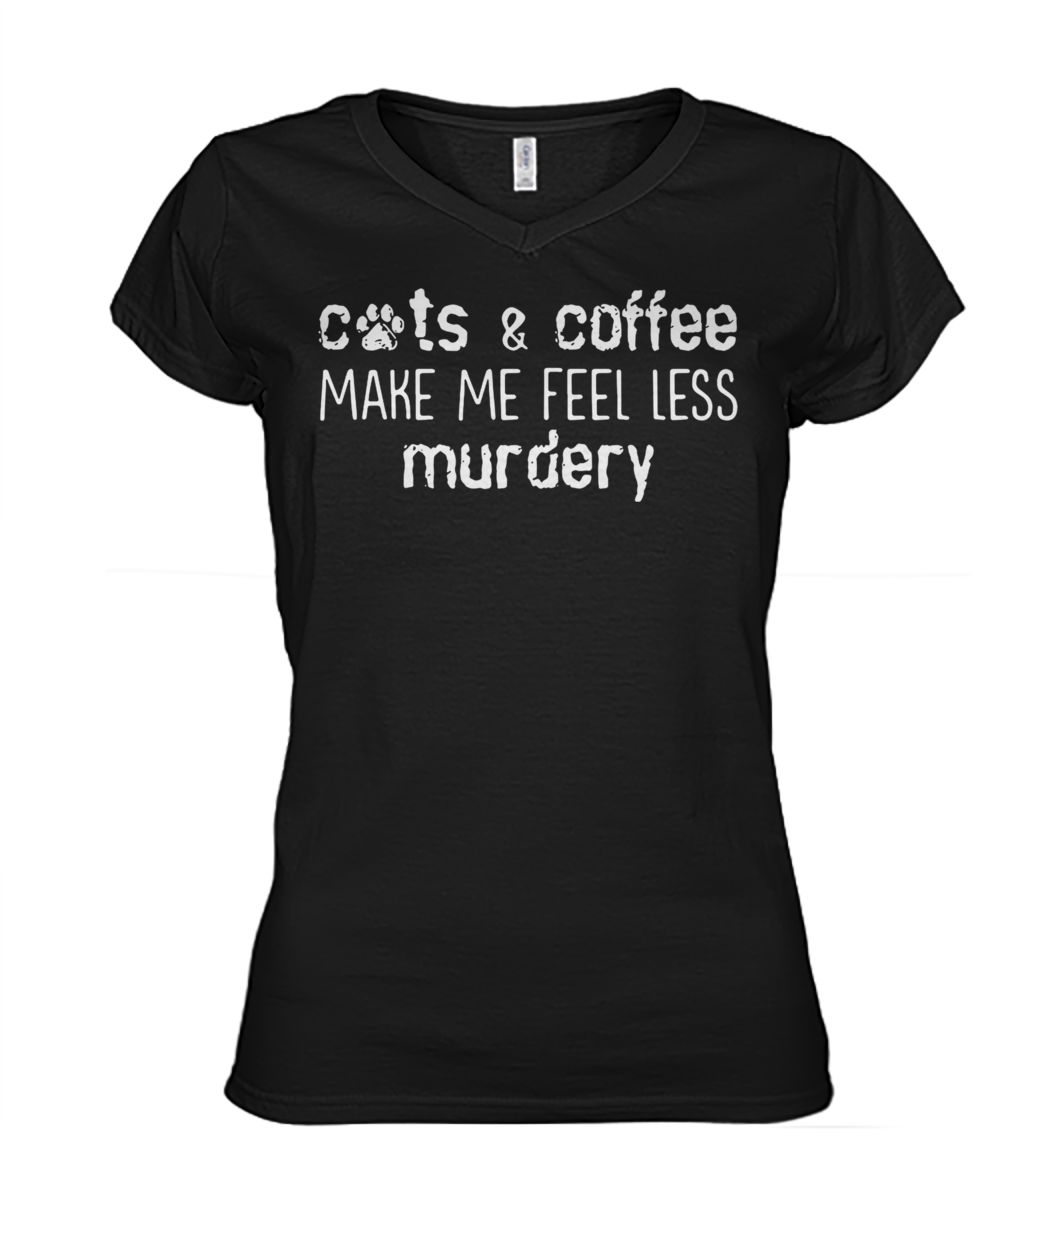 Cats and coffee make me feel less murdery women's v-neck